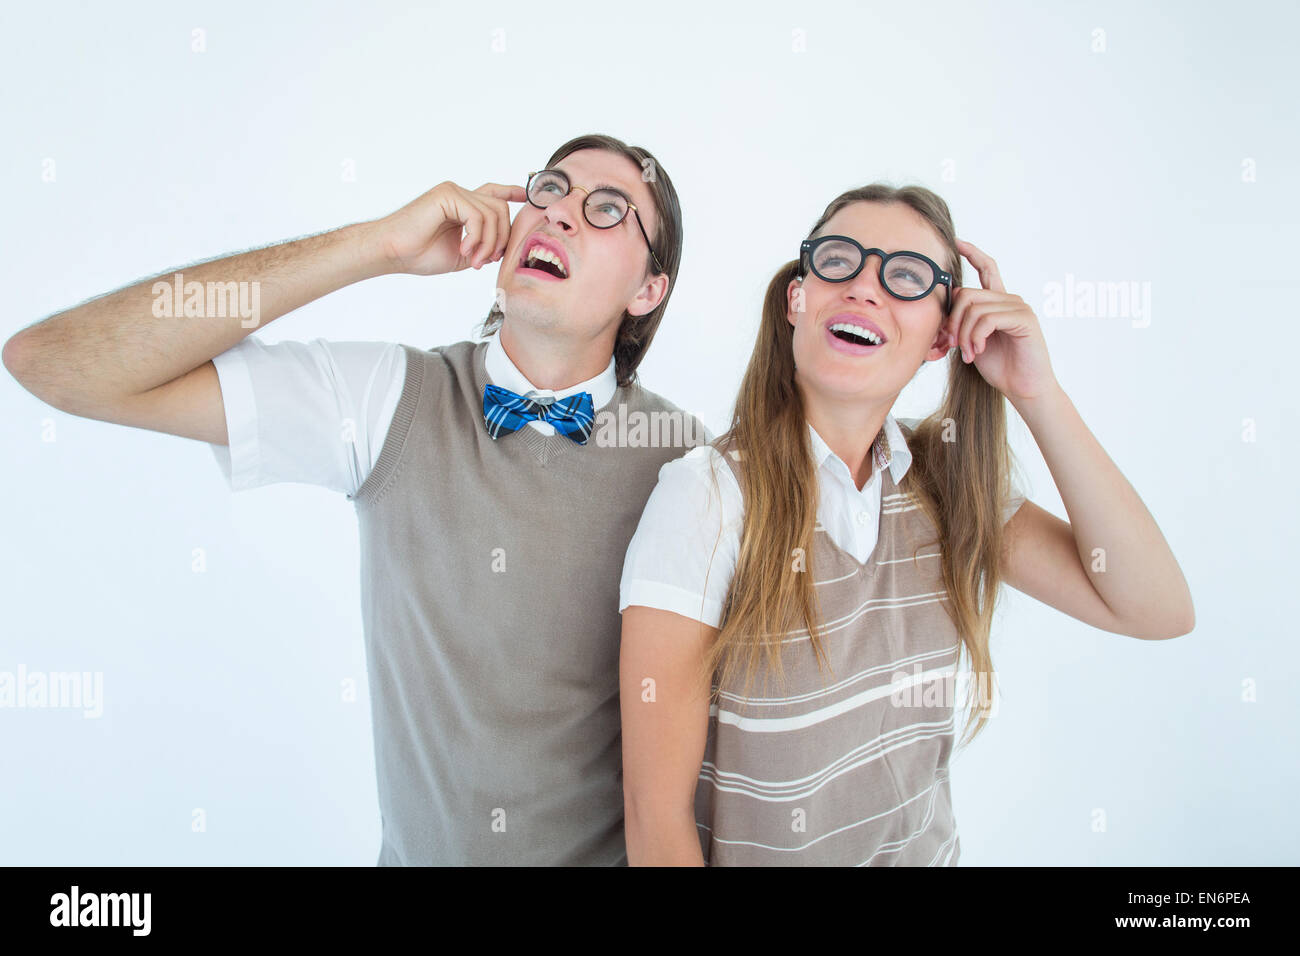 Geeky hipsters looking confused - Stock Image